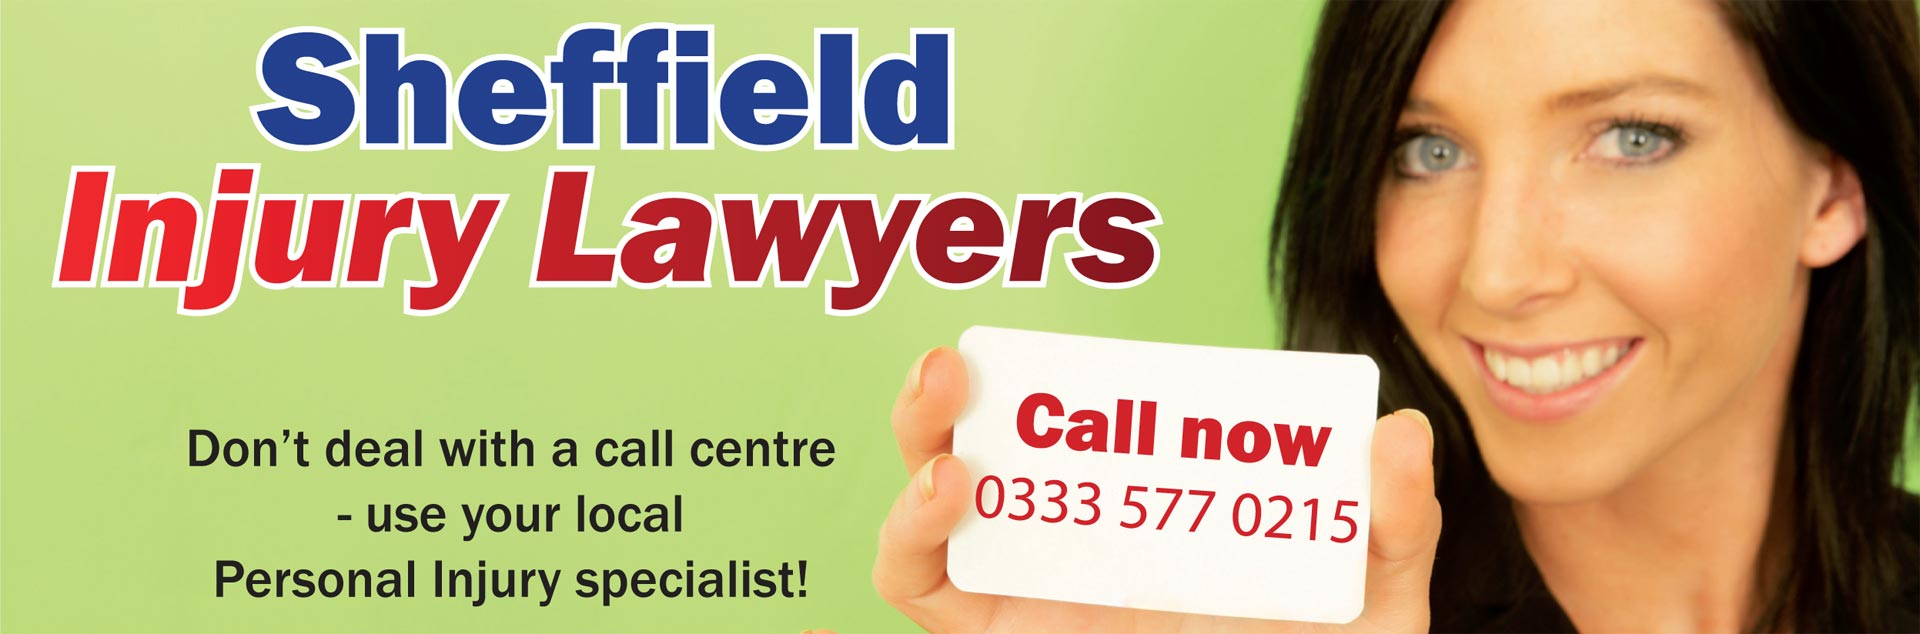 Sheffield Injury Lawyers